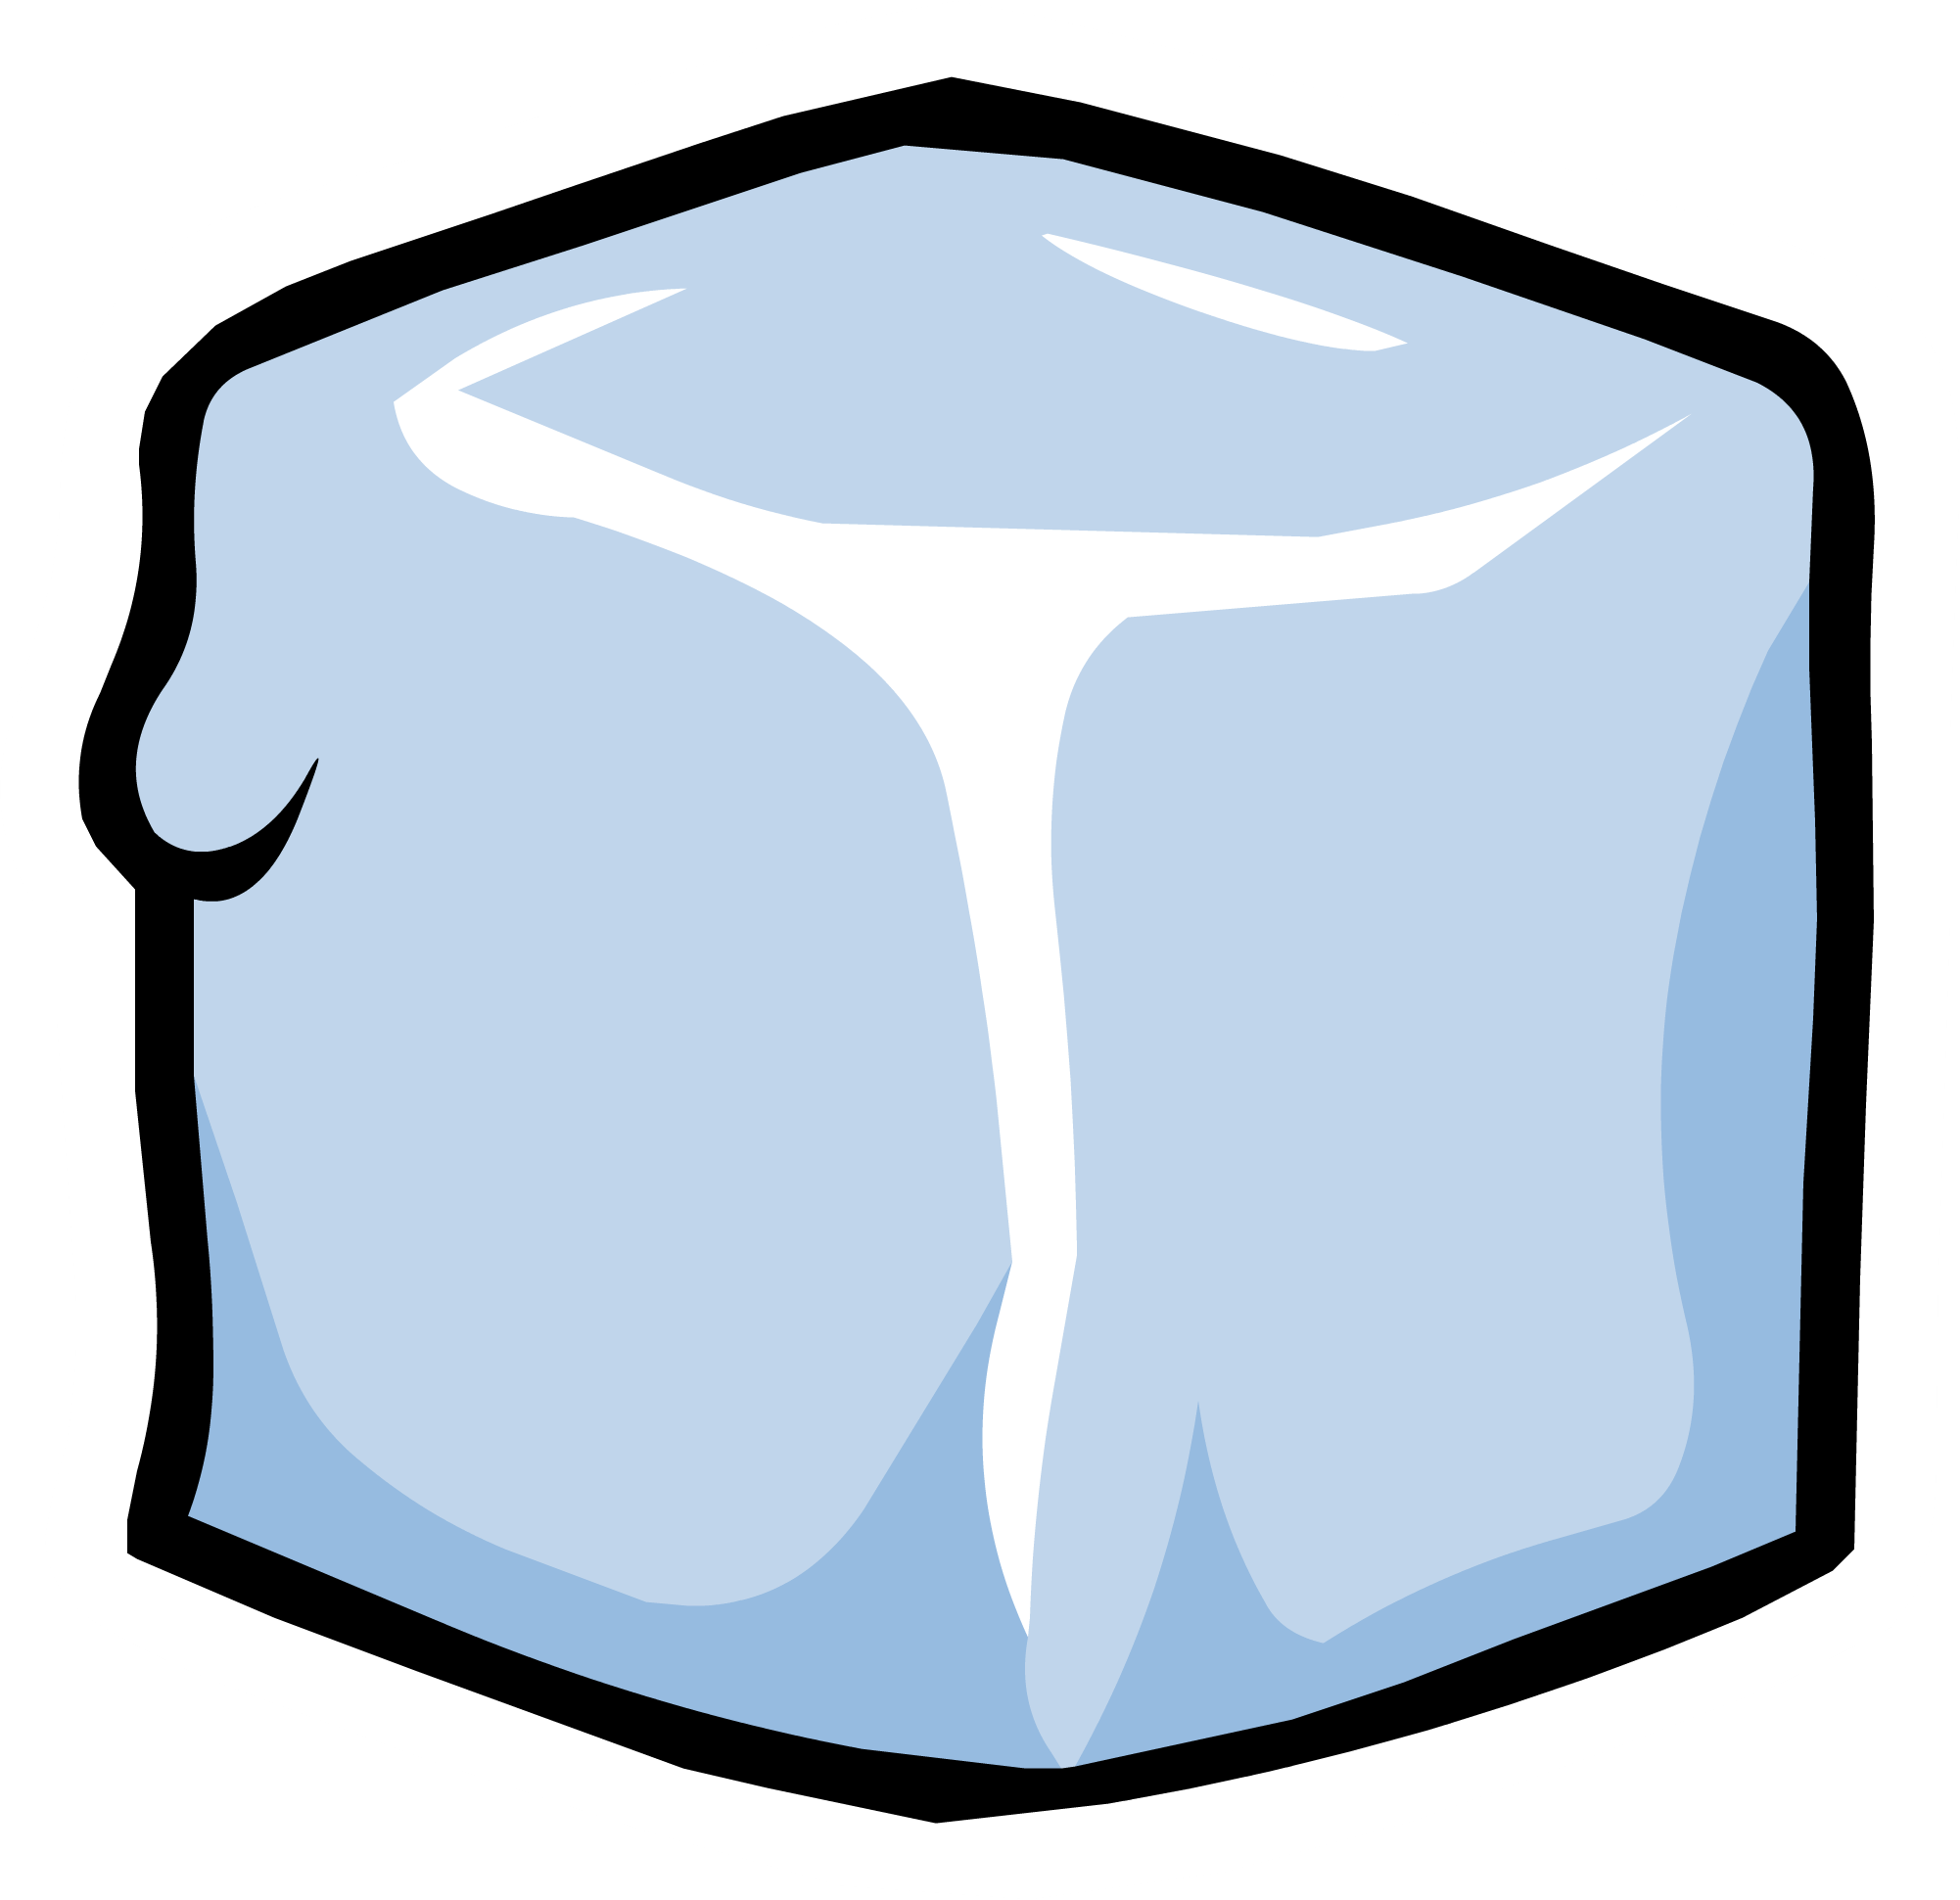 Transparent block ice. Pin club penguin wiki